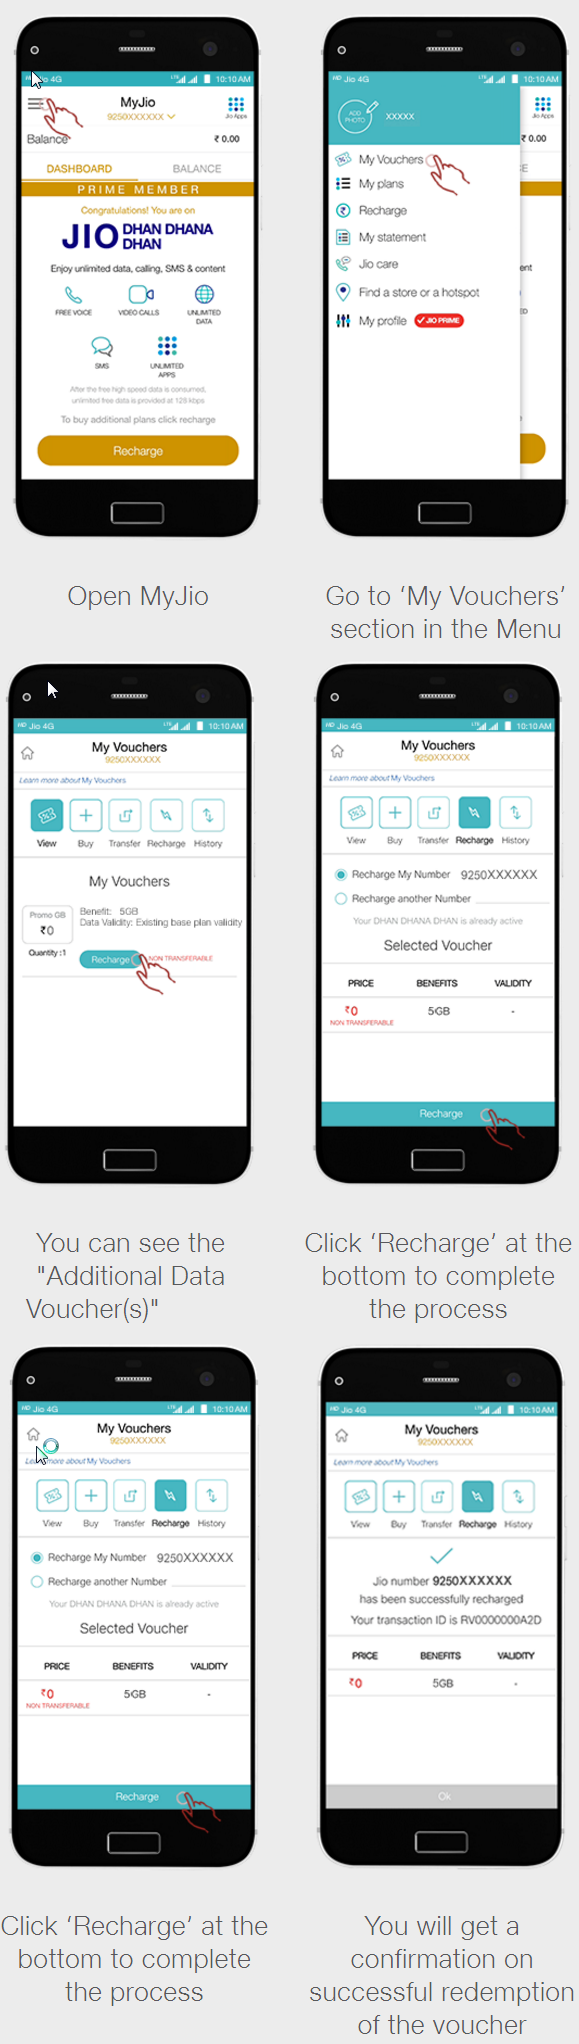 Reliance Jio Extra Data Offer How to Activate